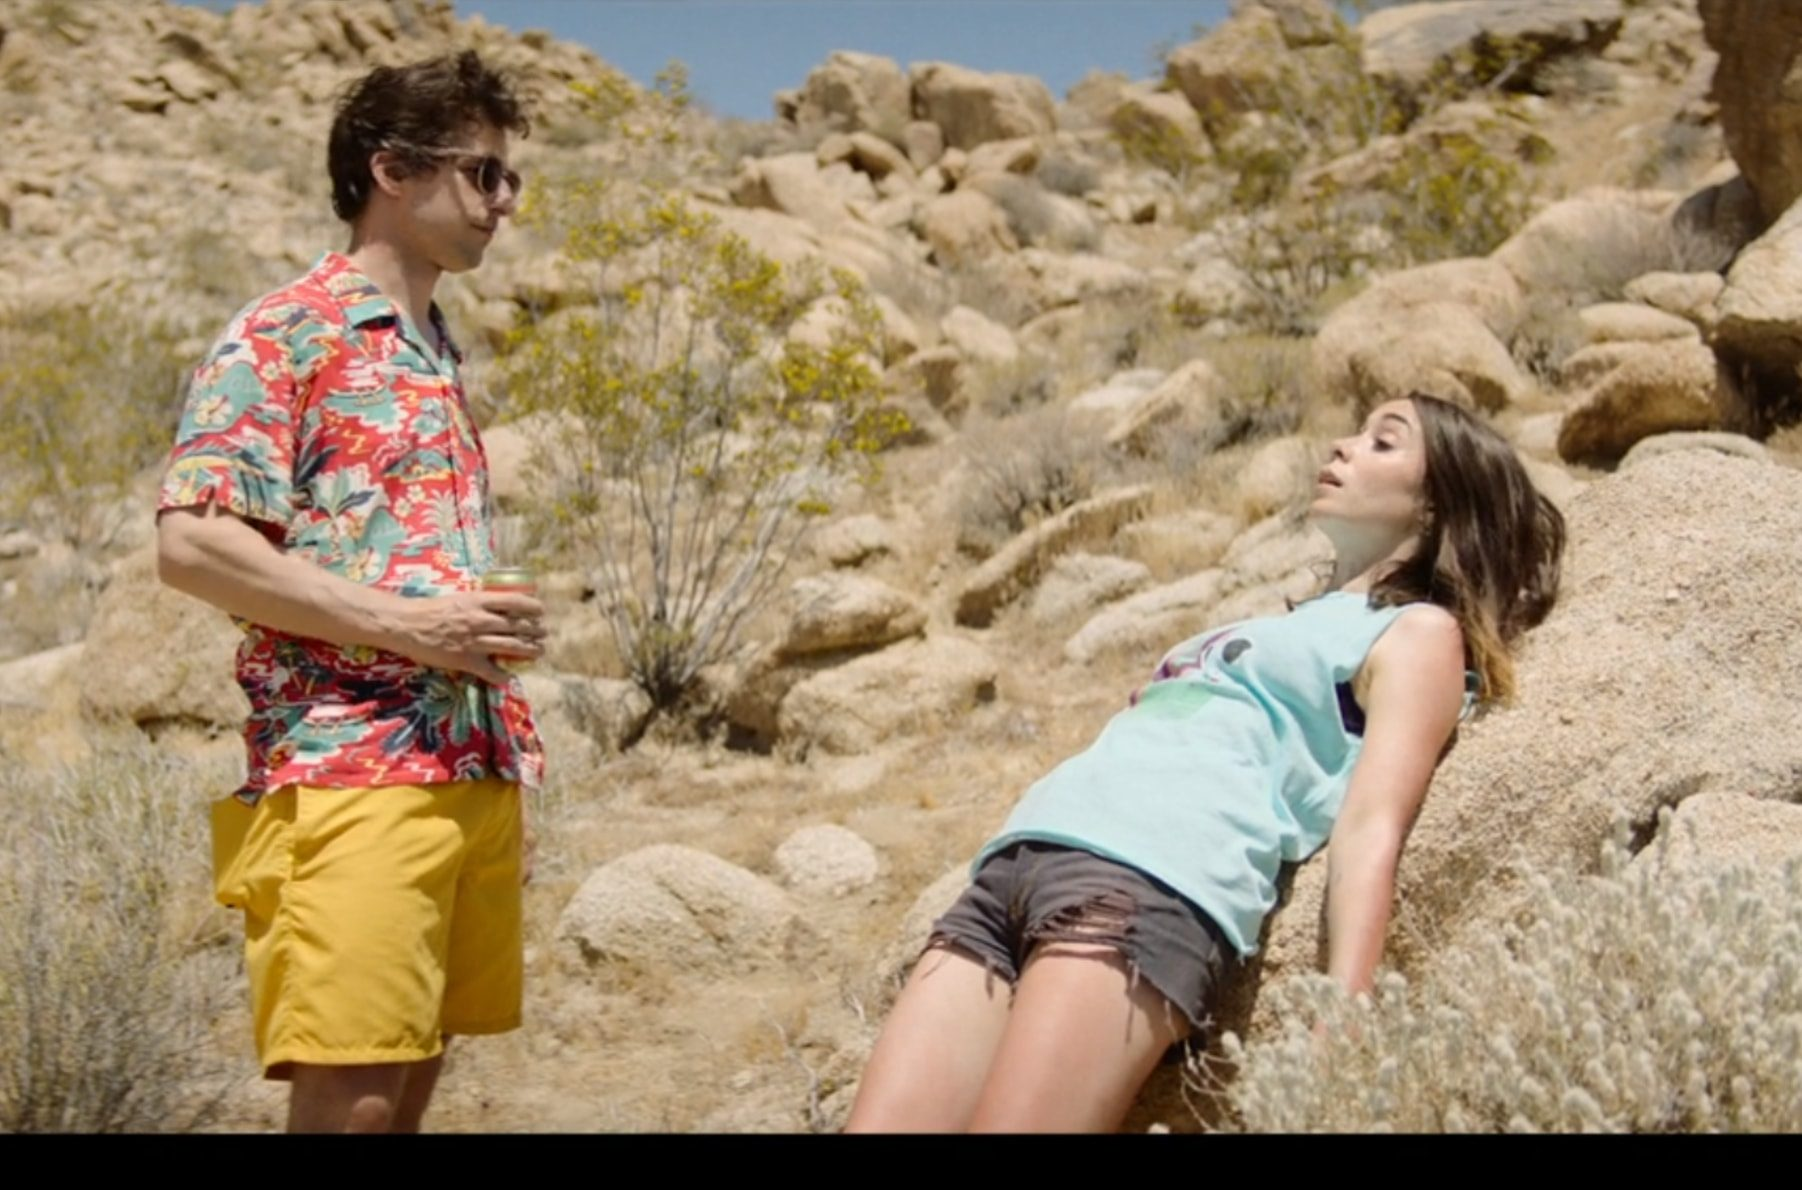 Screencap of the film Palm Springs, which features a time loop